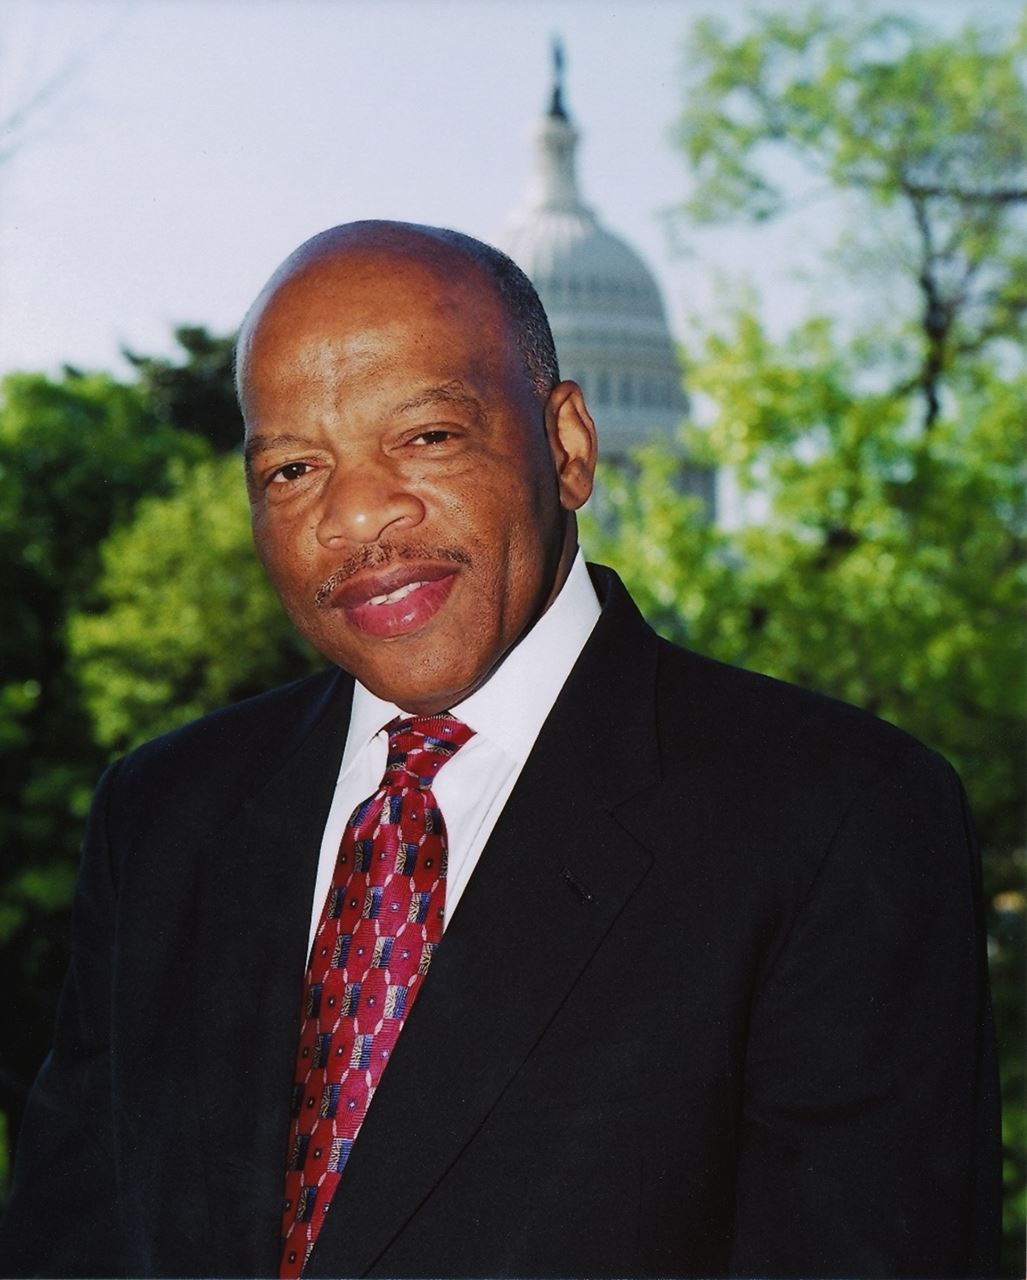 Picture of John Lewis